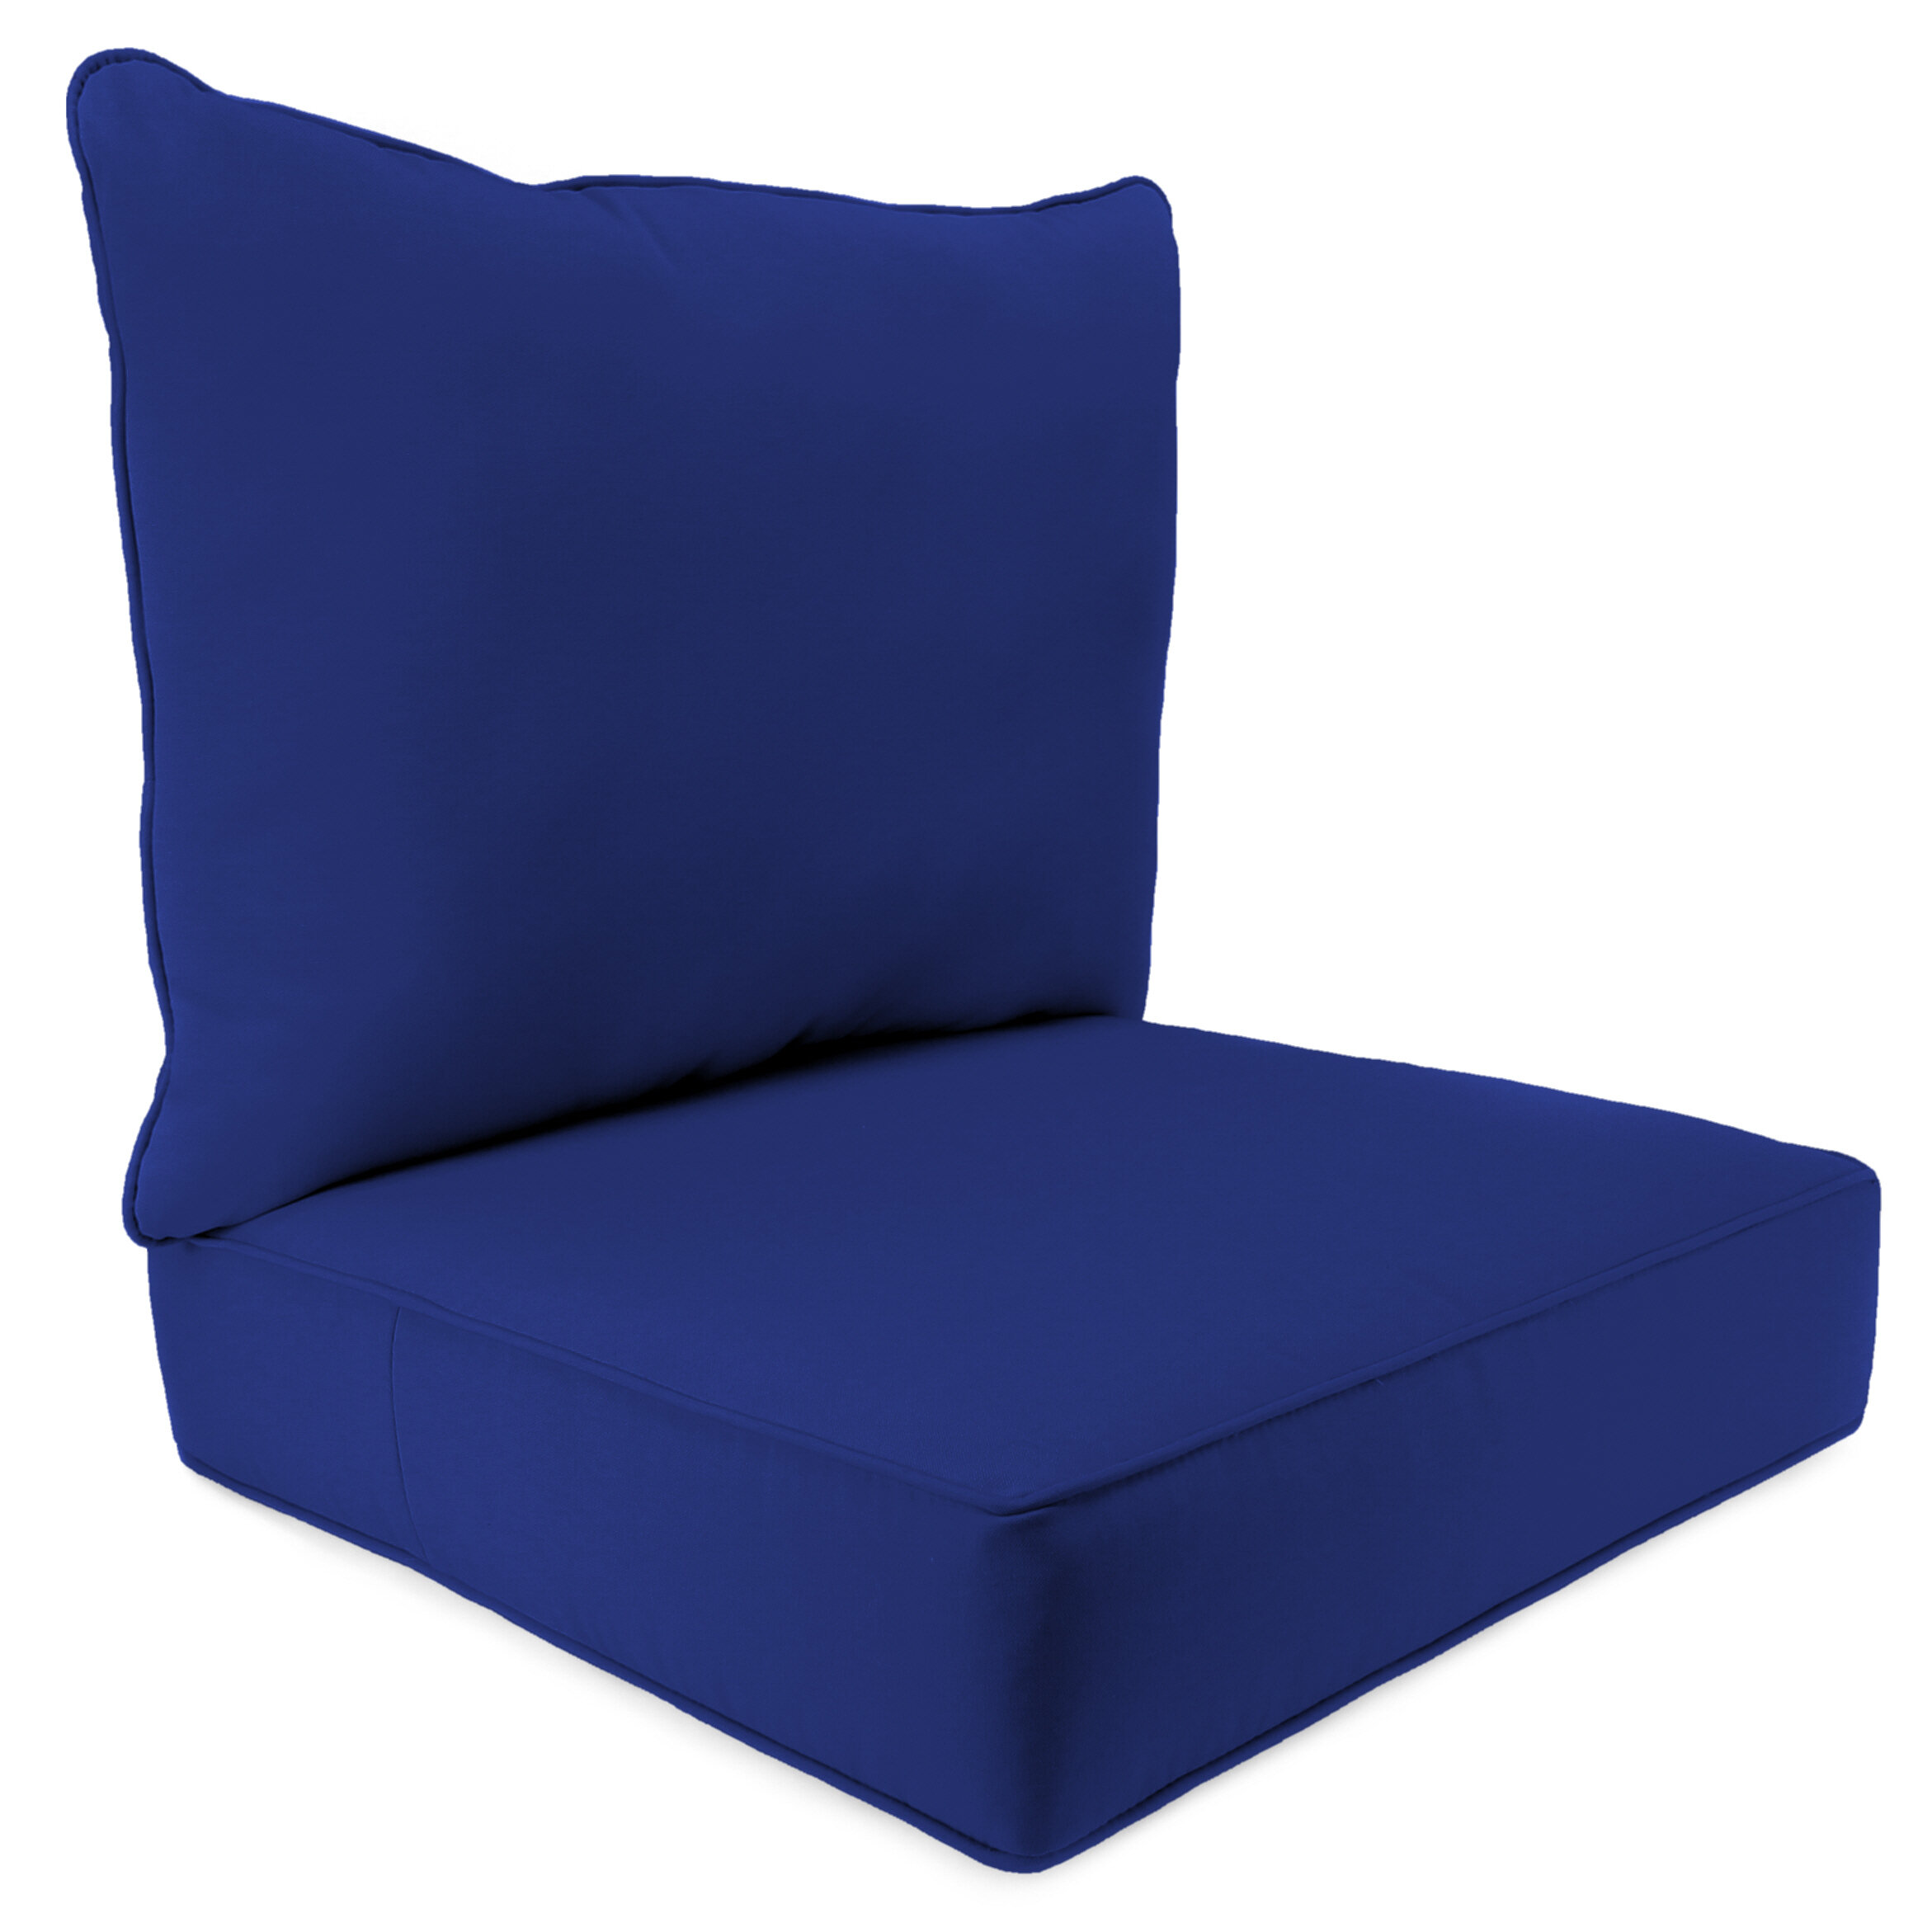 Surprising 2 Piece Indoor Outdoor Chair Cushion Set Beutiful Home Inspiration Aditmahrainfo